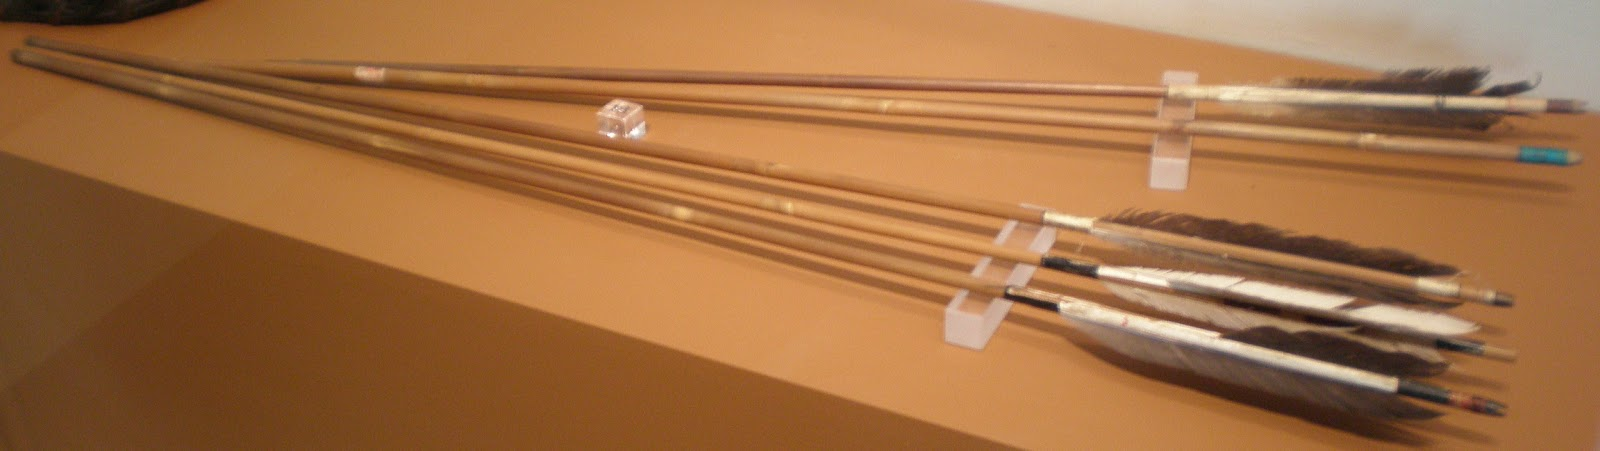 how to make bamboo arrows